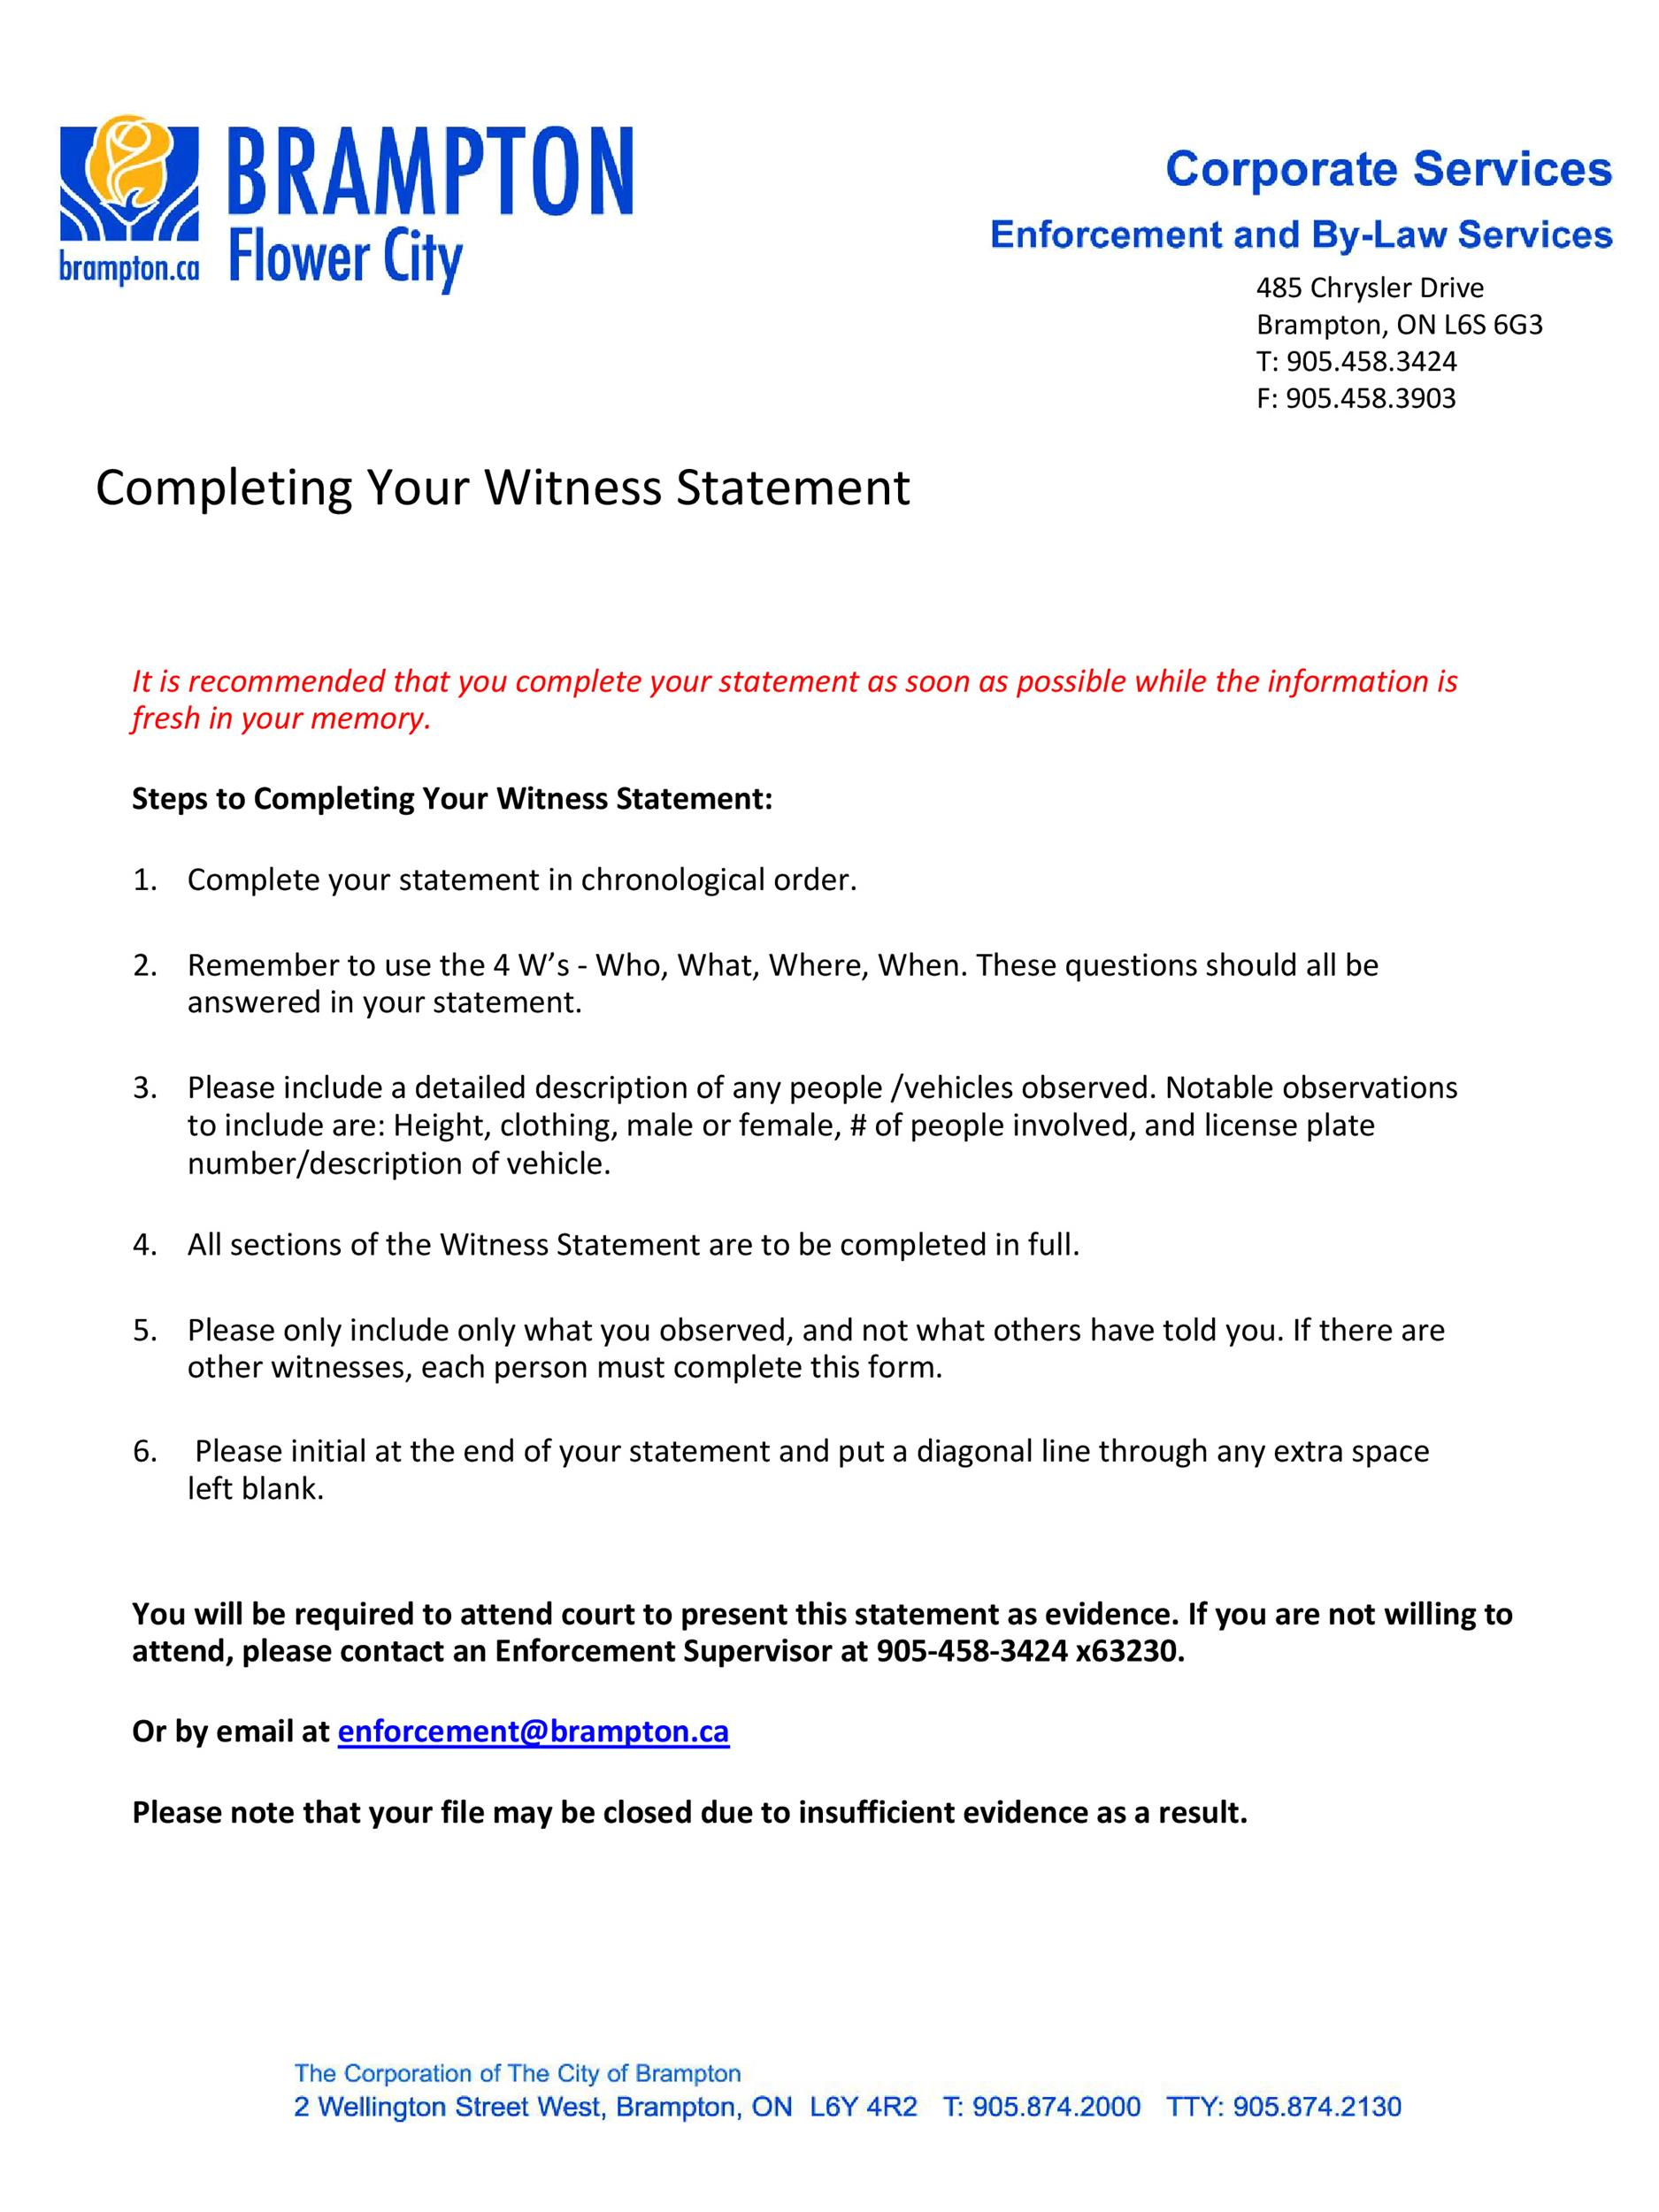 Free witness statement form 03